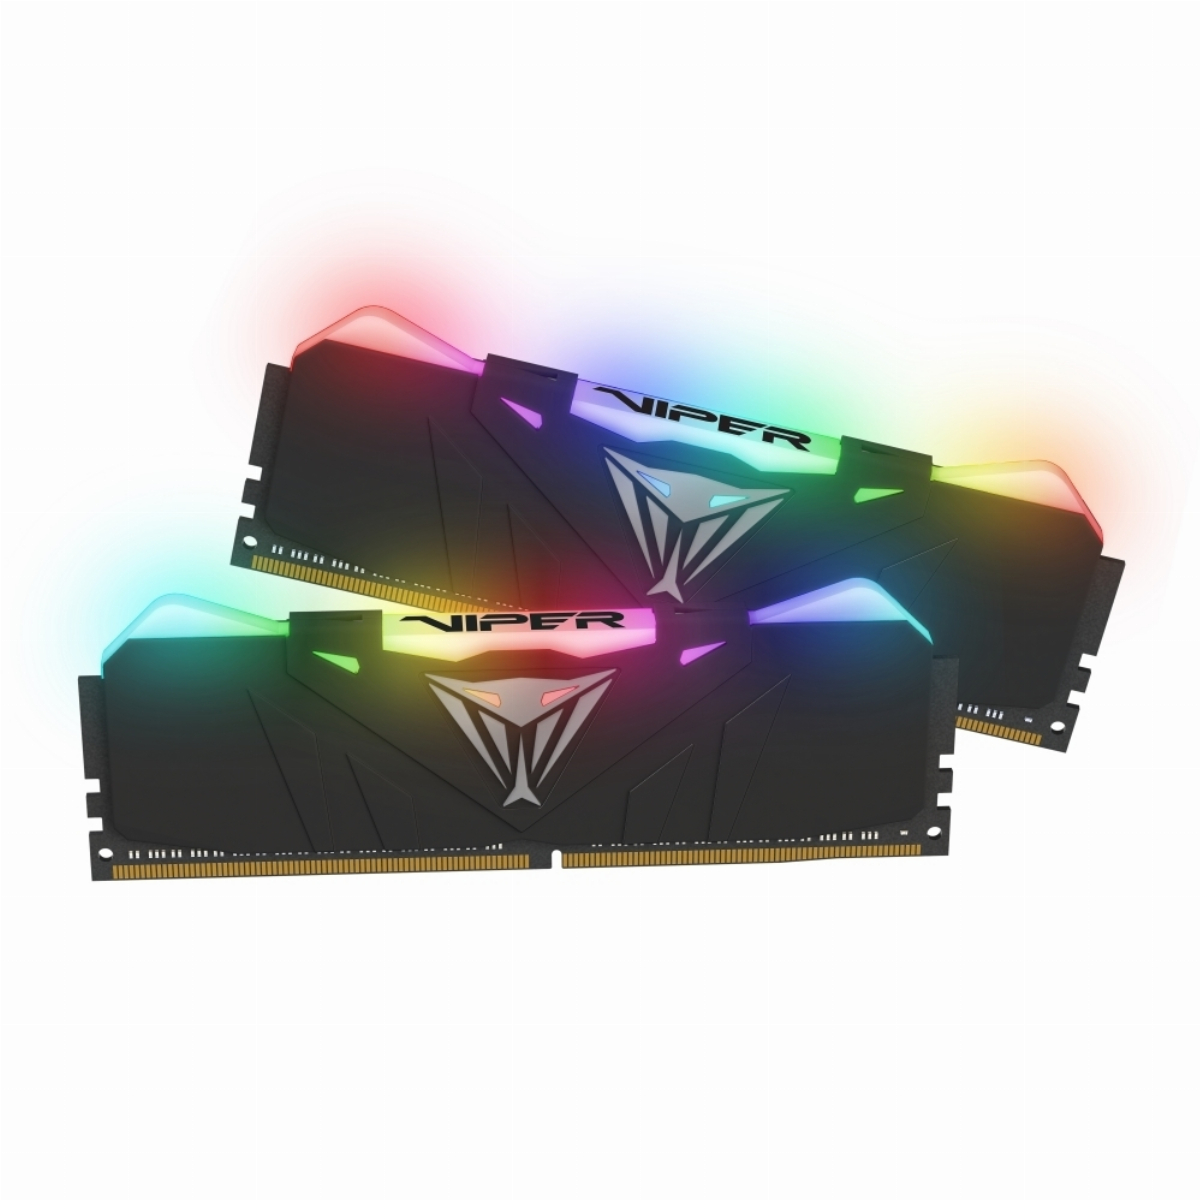 Памет Patriot Viper RGB Black 16GB (2x8GB) 3000Mhz DDR4 CL15